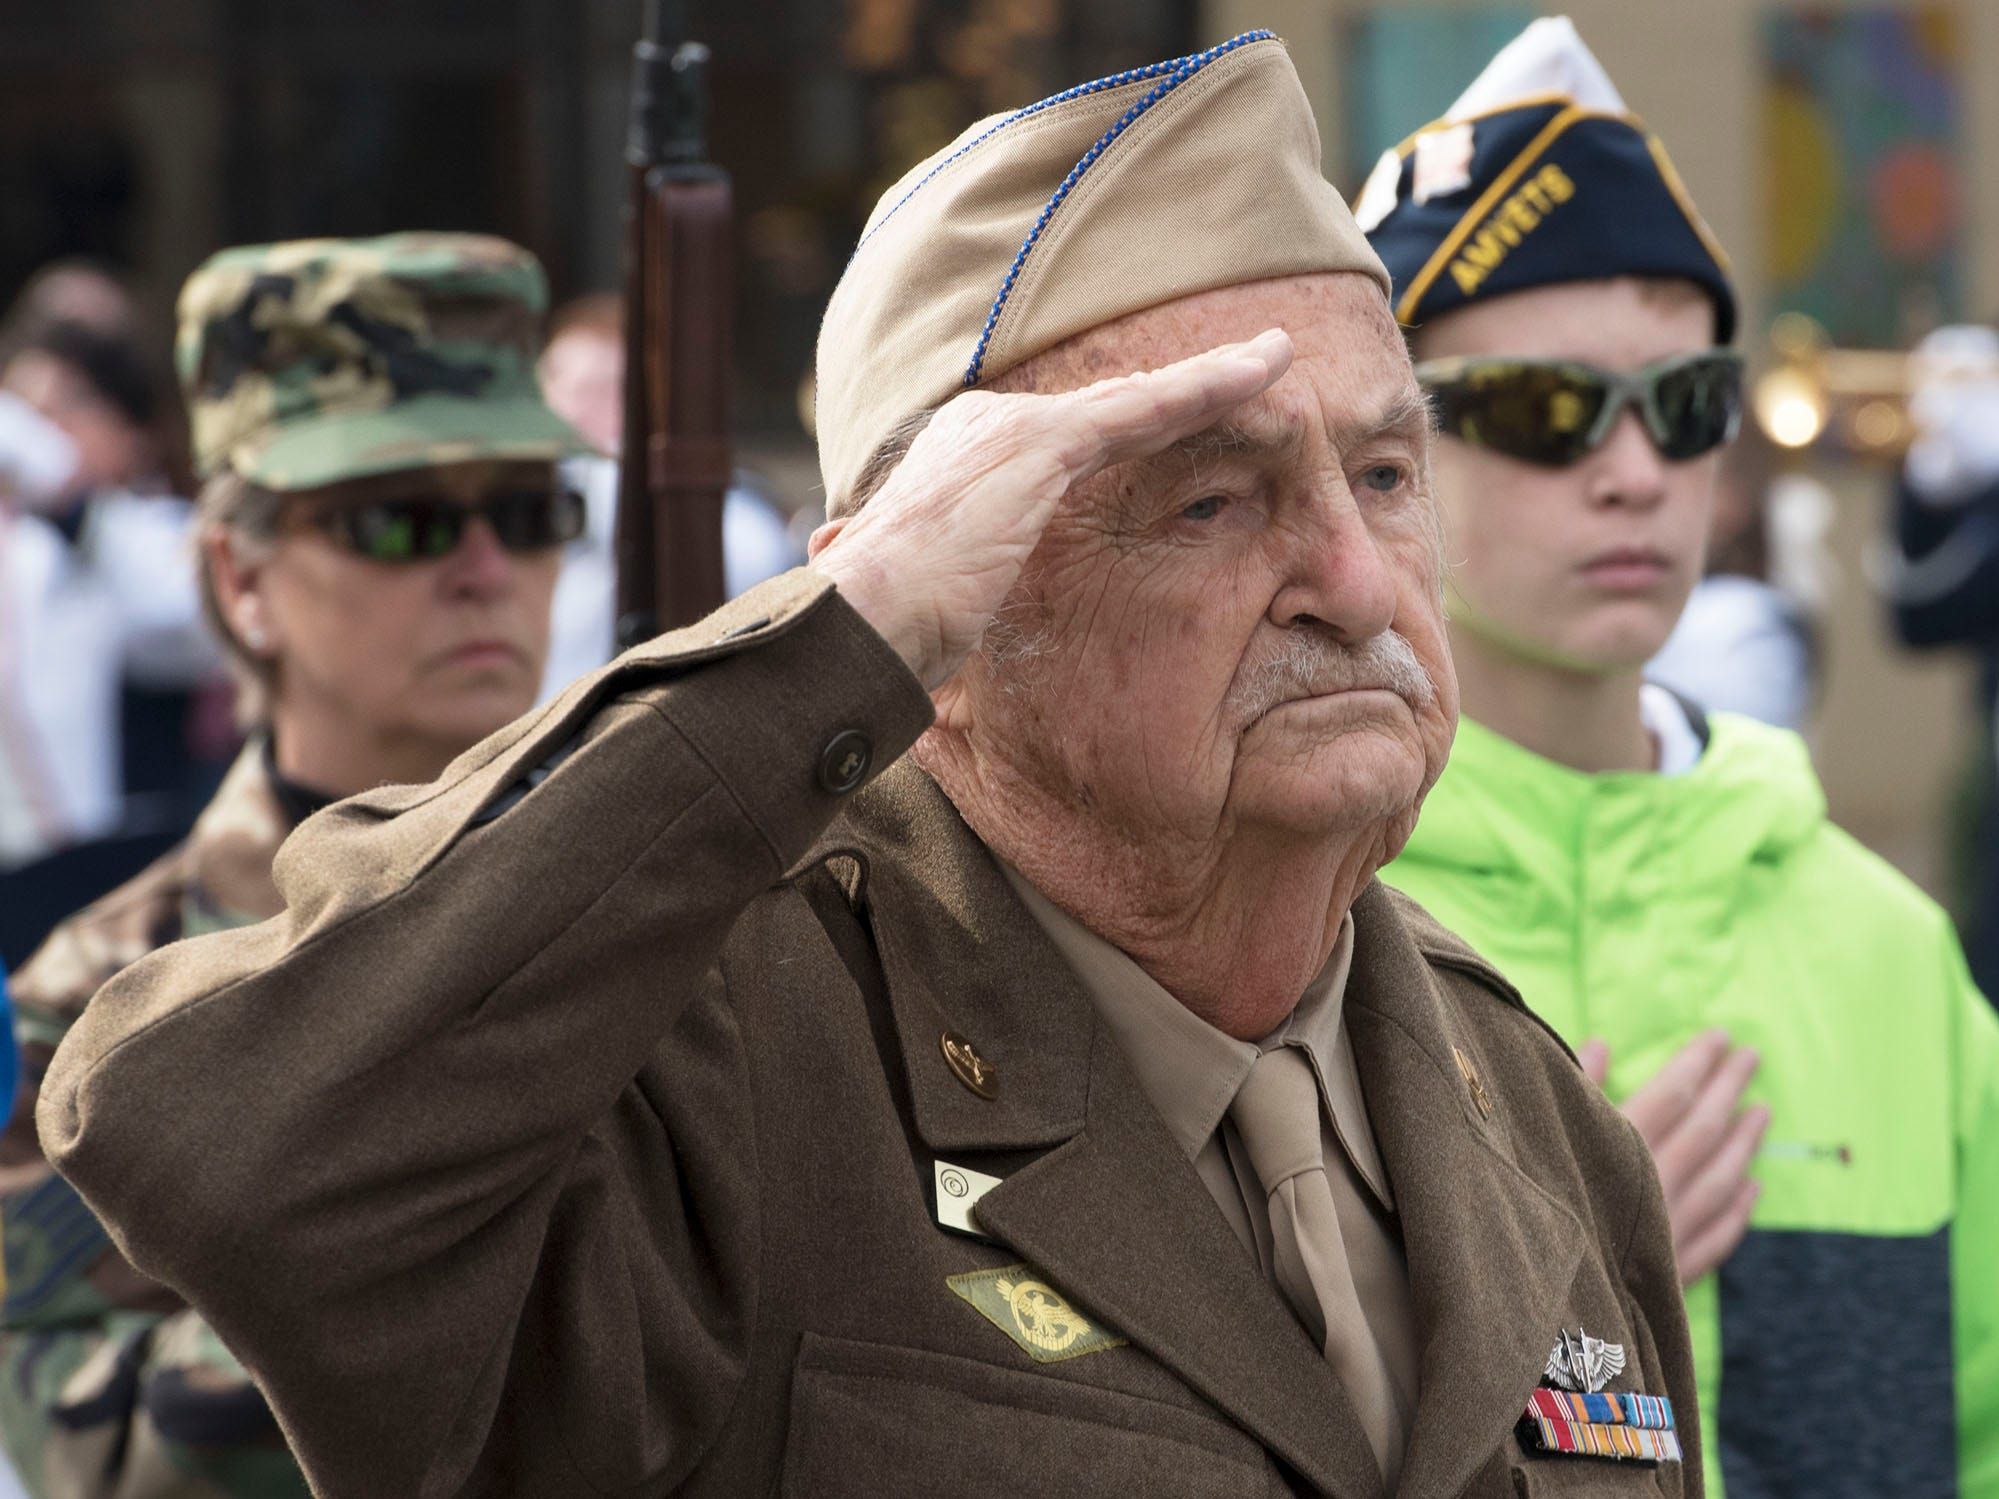 WWII Veteran and parade marshal David Demichei salutes during the ceremony. The Veterans Day Parade and ceremony to honor members of the military was held Monday, November 12, 2018 along Lincoln Way East and at Memorial Square.